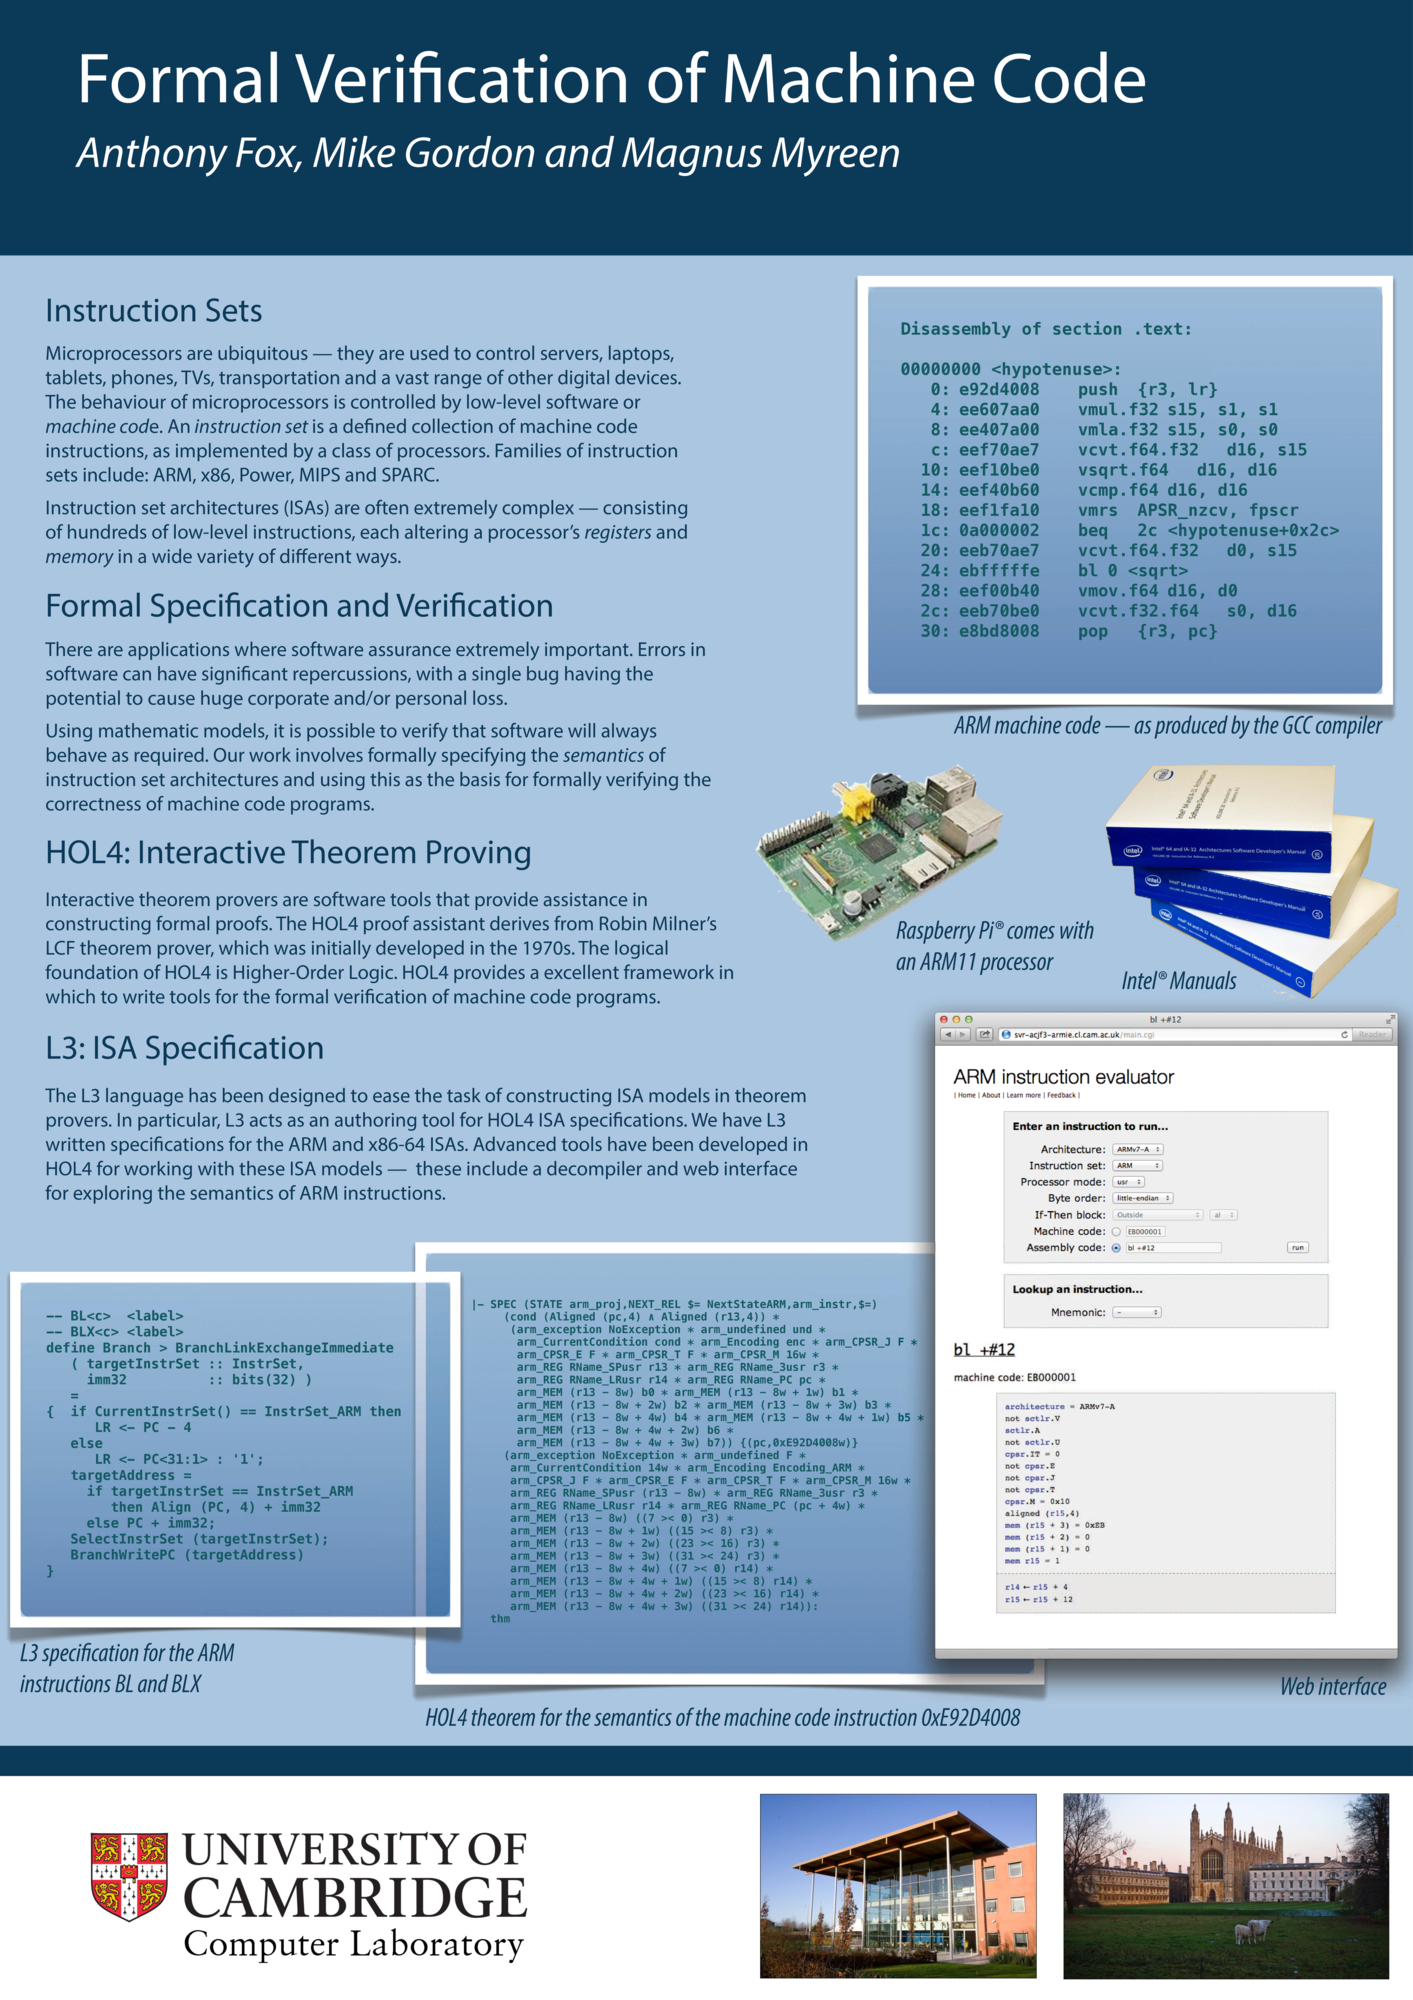 Computer Laboratory 75th Anniversary Poster Trojan F32 Wiring Diagram Formal Verification Of Machine Code